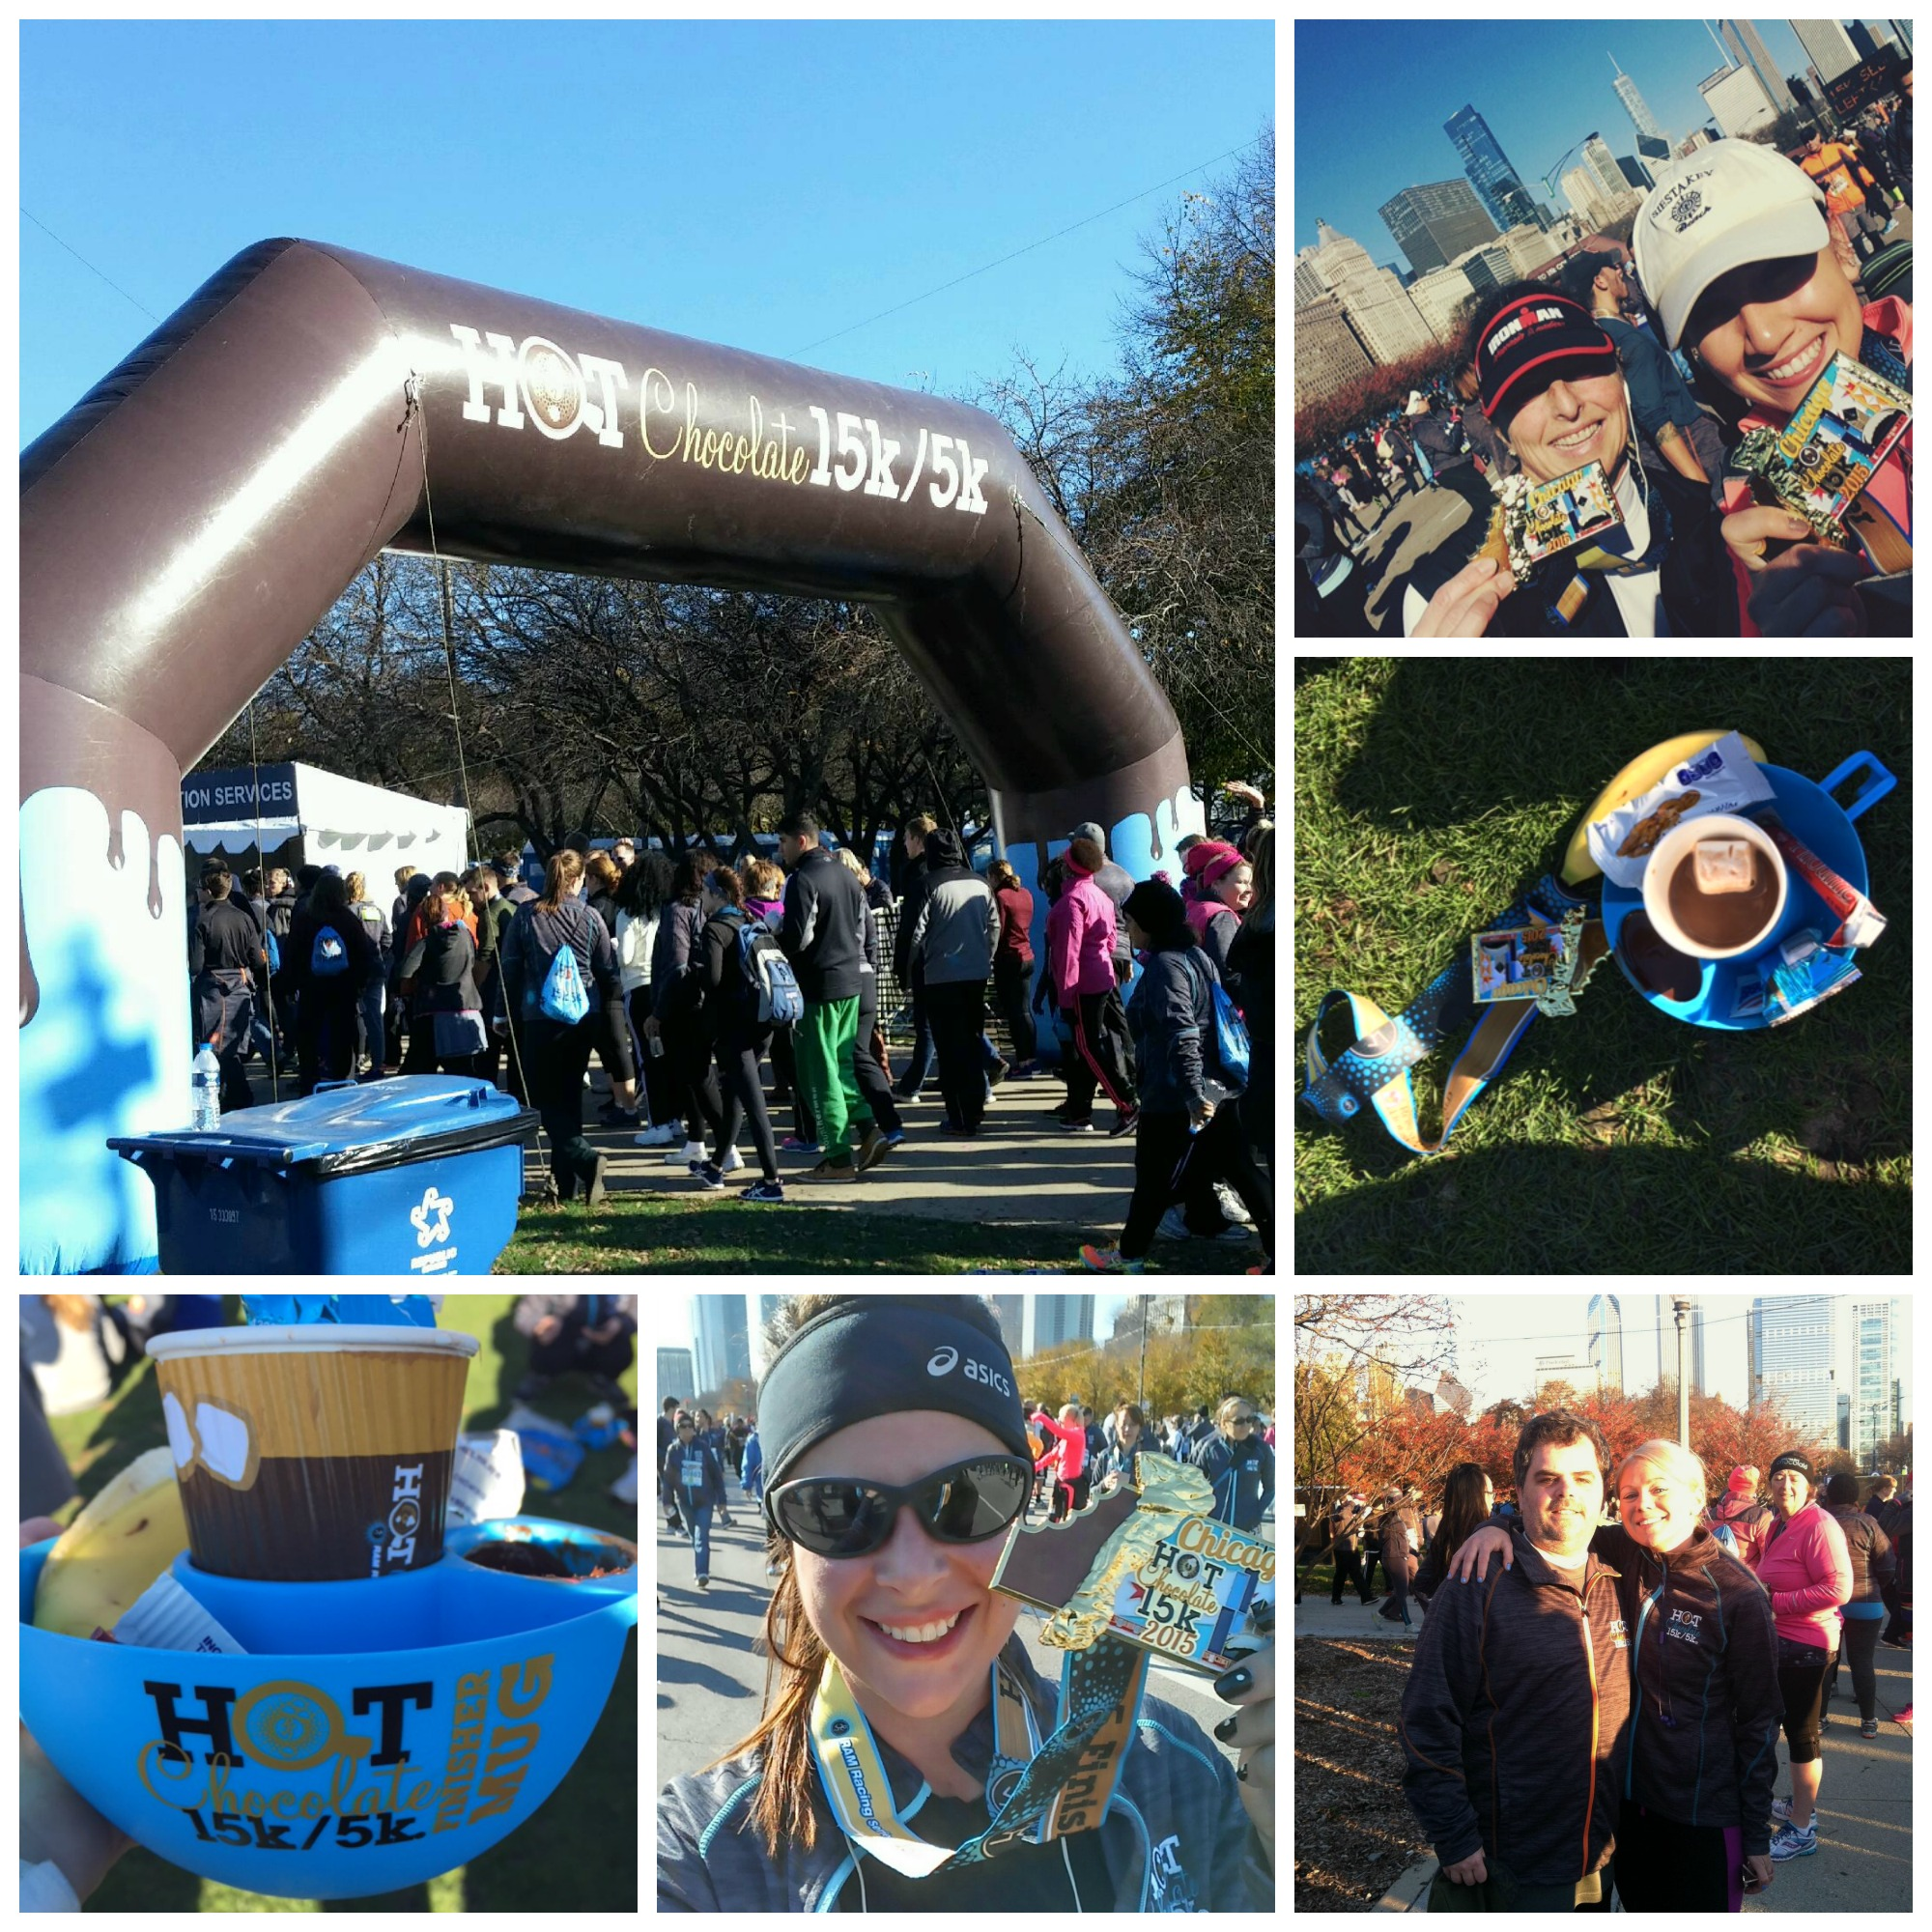 Q1 Productions Participates in the Hot Chocolate 15k/5k - Q1 ...